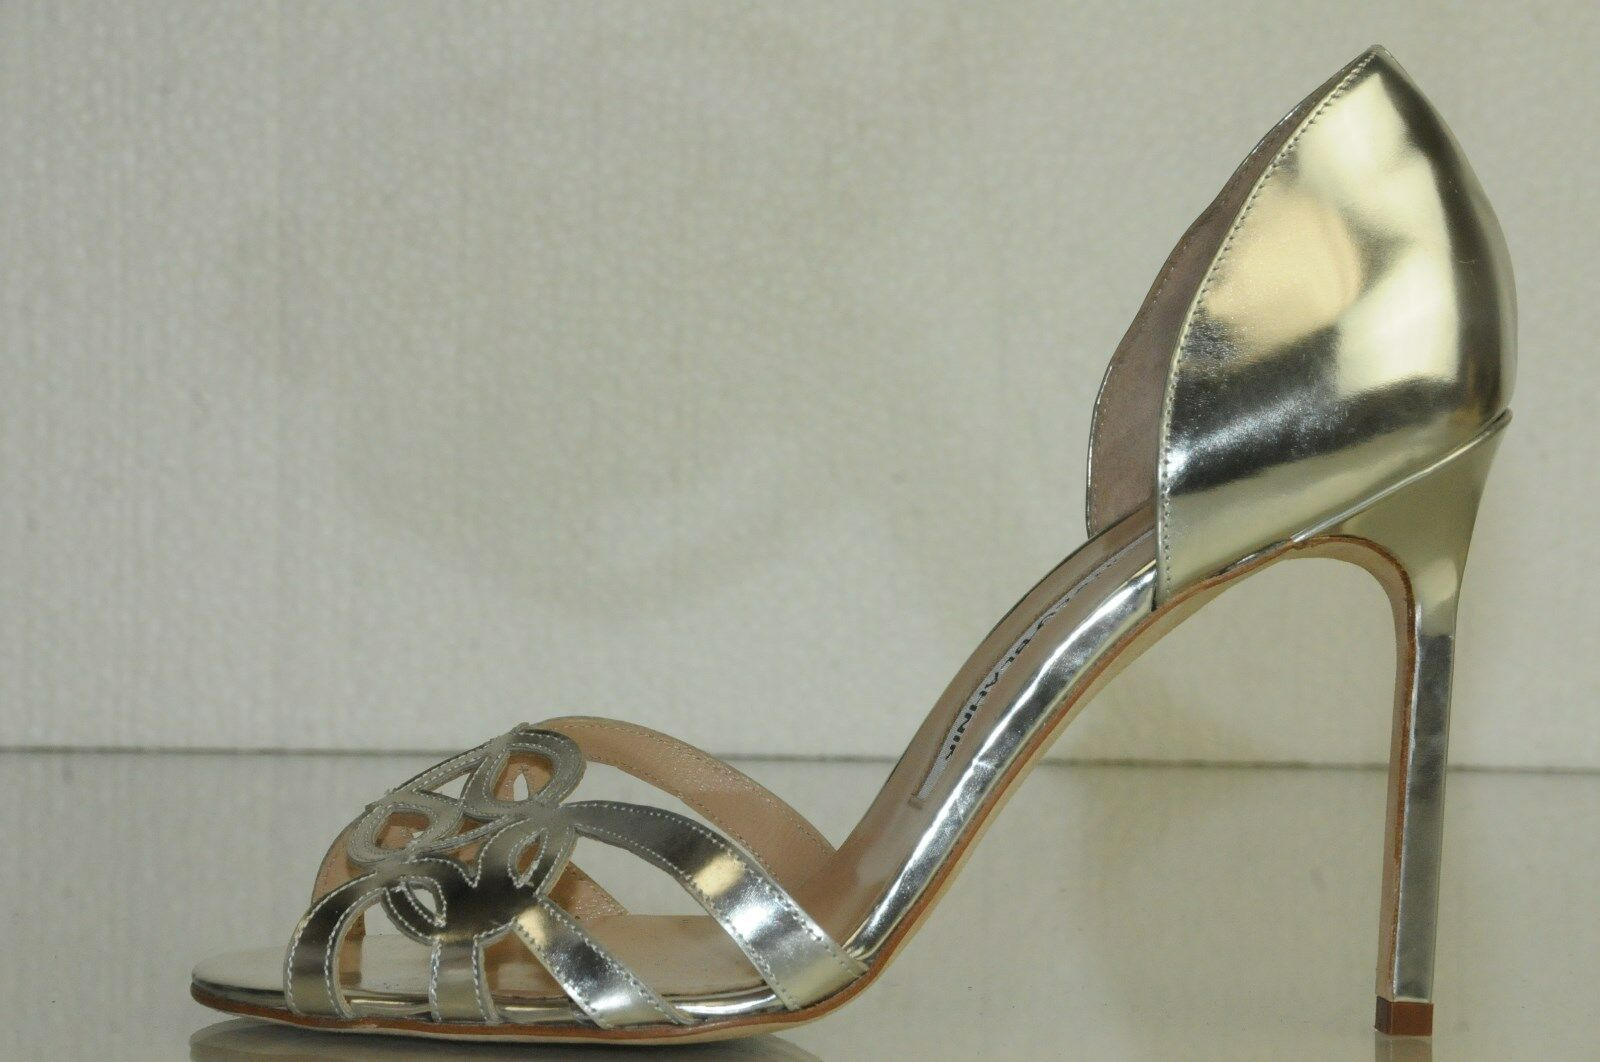 895 New Manolo Blahnik Silver Dorsay Sandals BB Heels shoes 37 Wedding